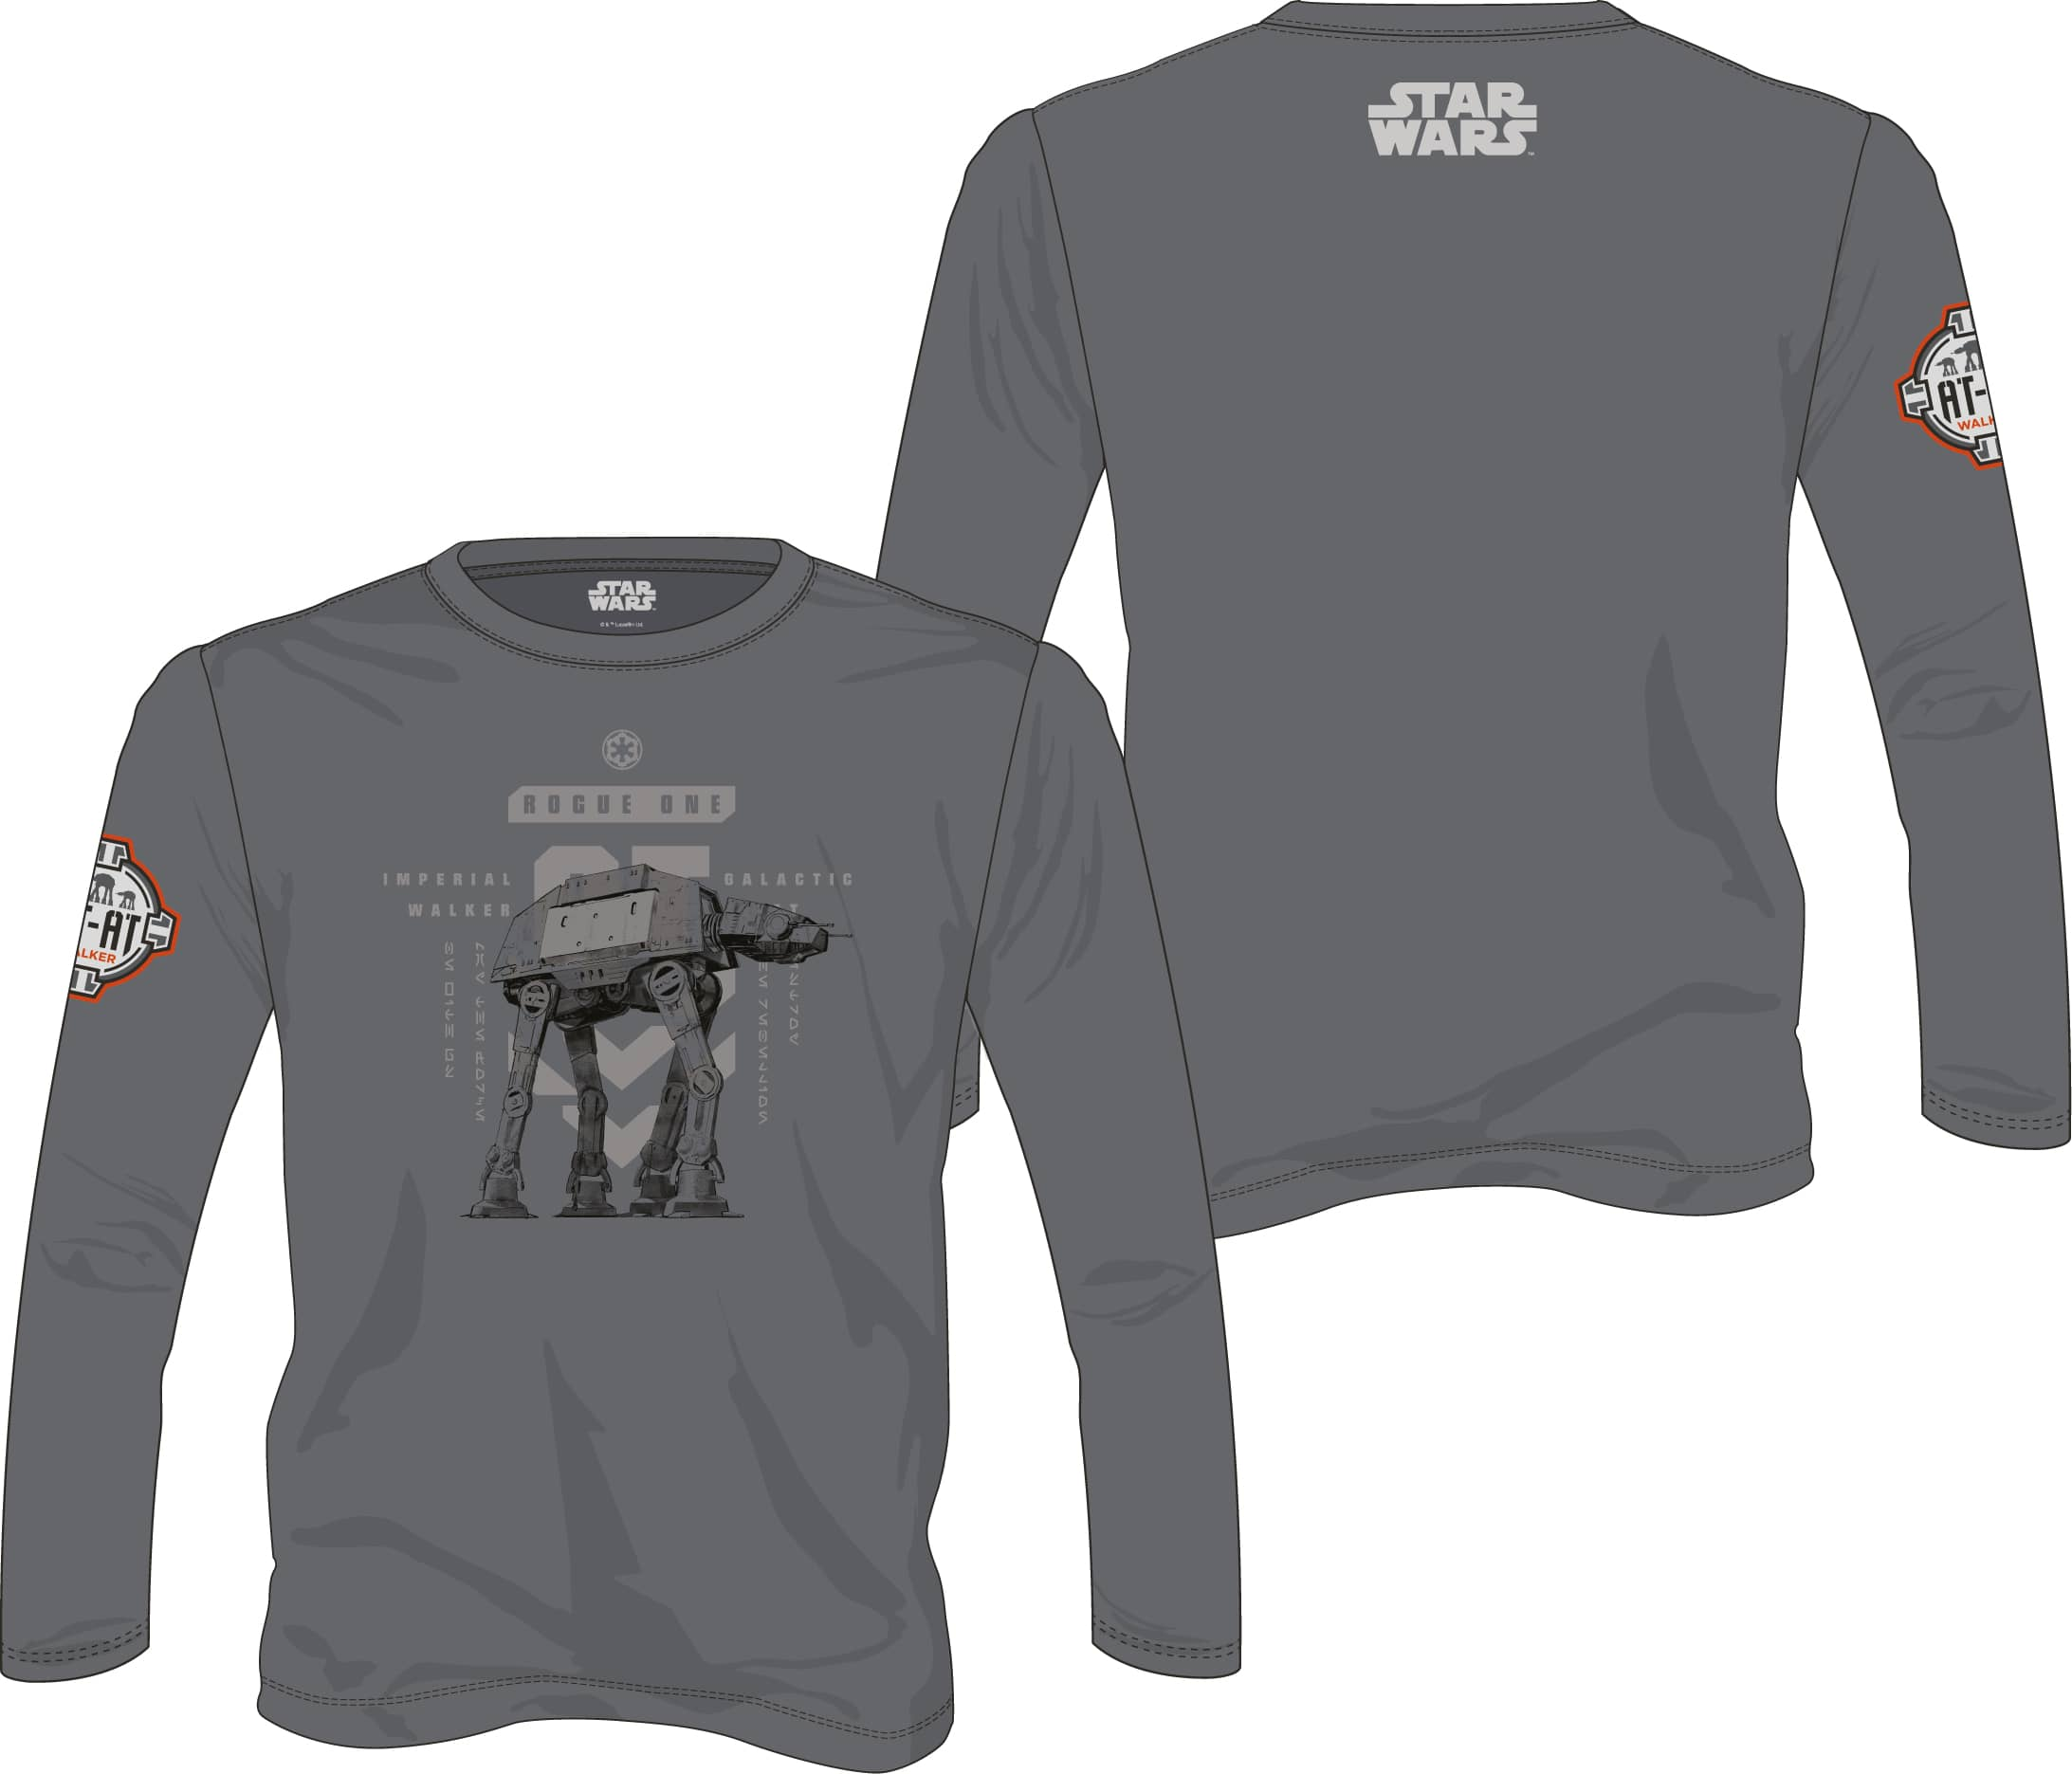 AT-AT CAMINANTE M/LARGA CAMISETA GRIS CHICO T-S STAR WARS ROGUE ONE